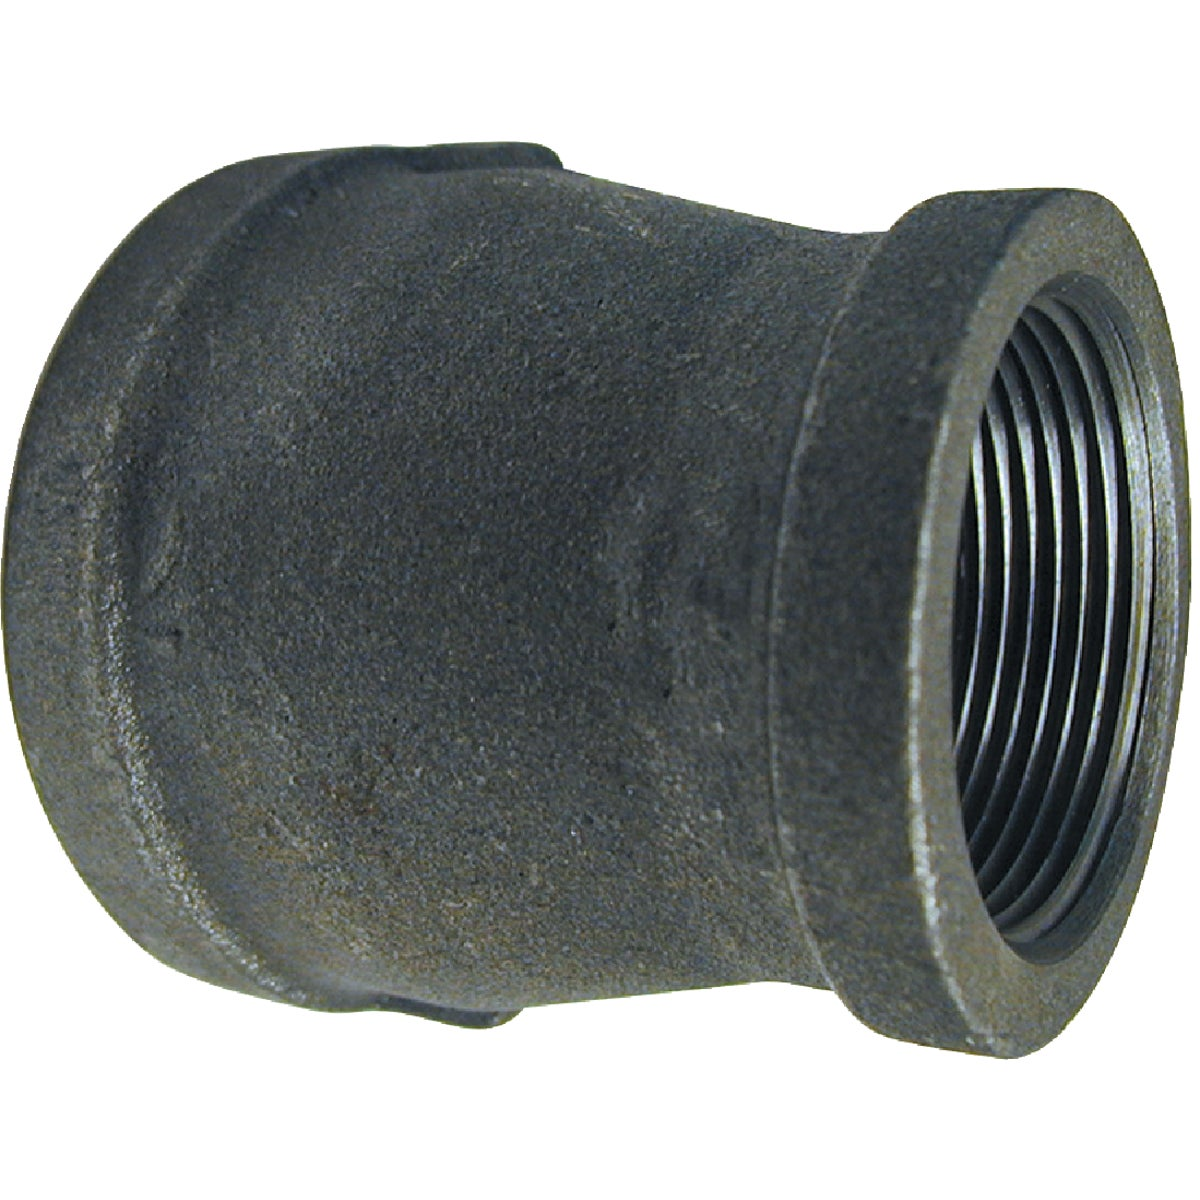 1/4X1/8 BLACK COUPLING - 521-310BG by Mueller B K